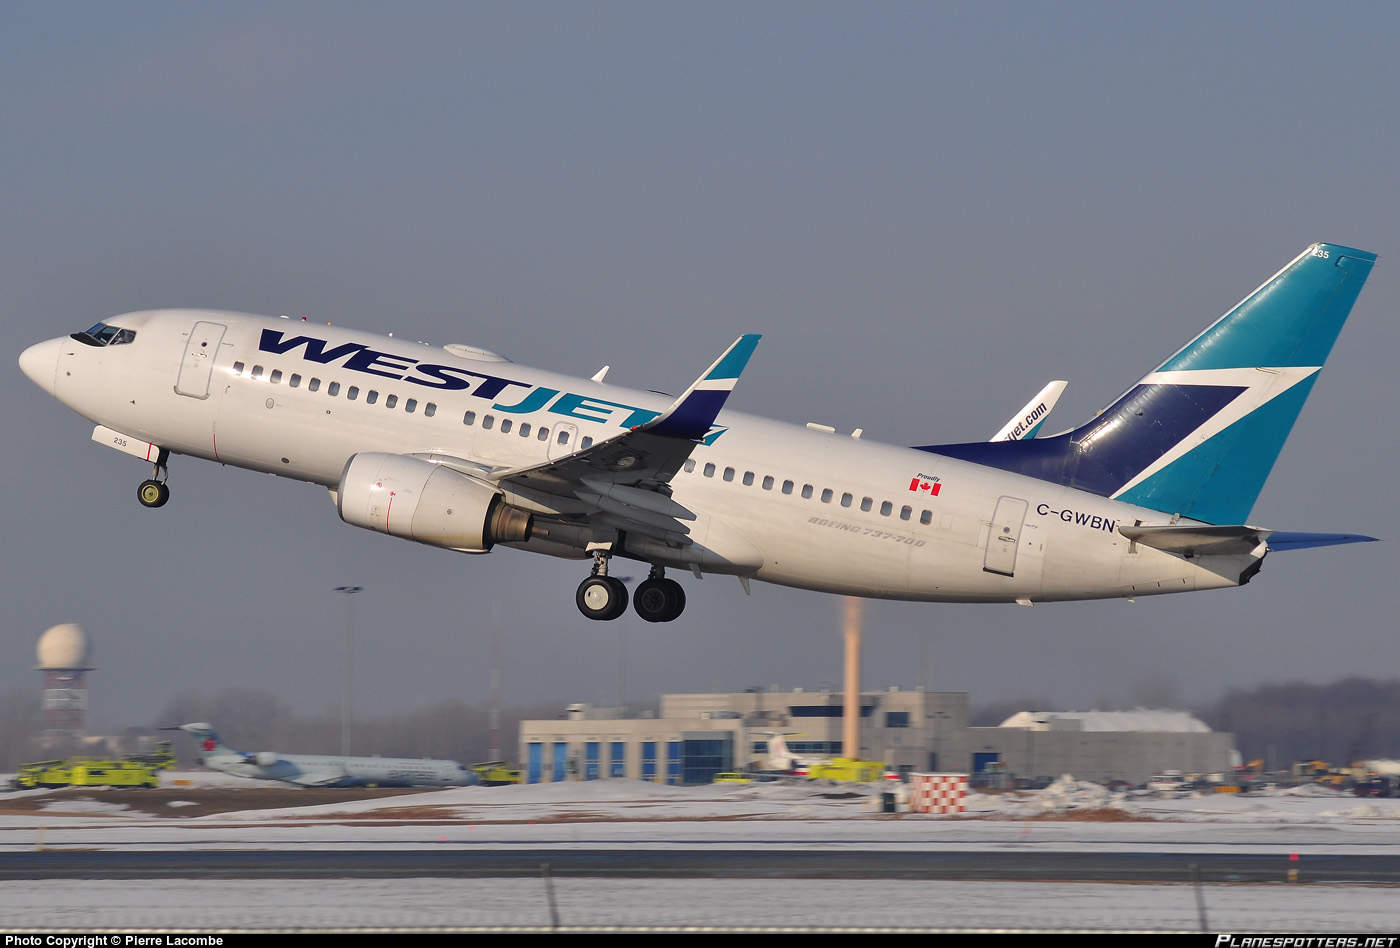 Stong fumes and haze onboard a WestJet Boeing 737-7CT(WL)